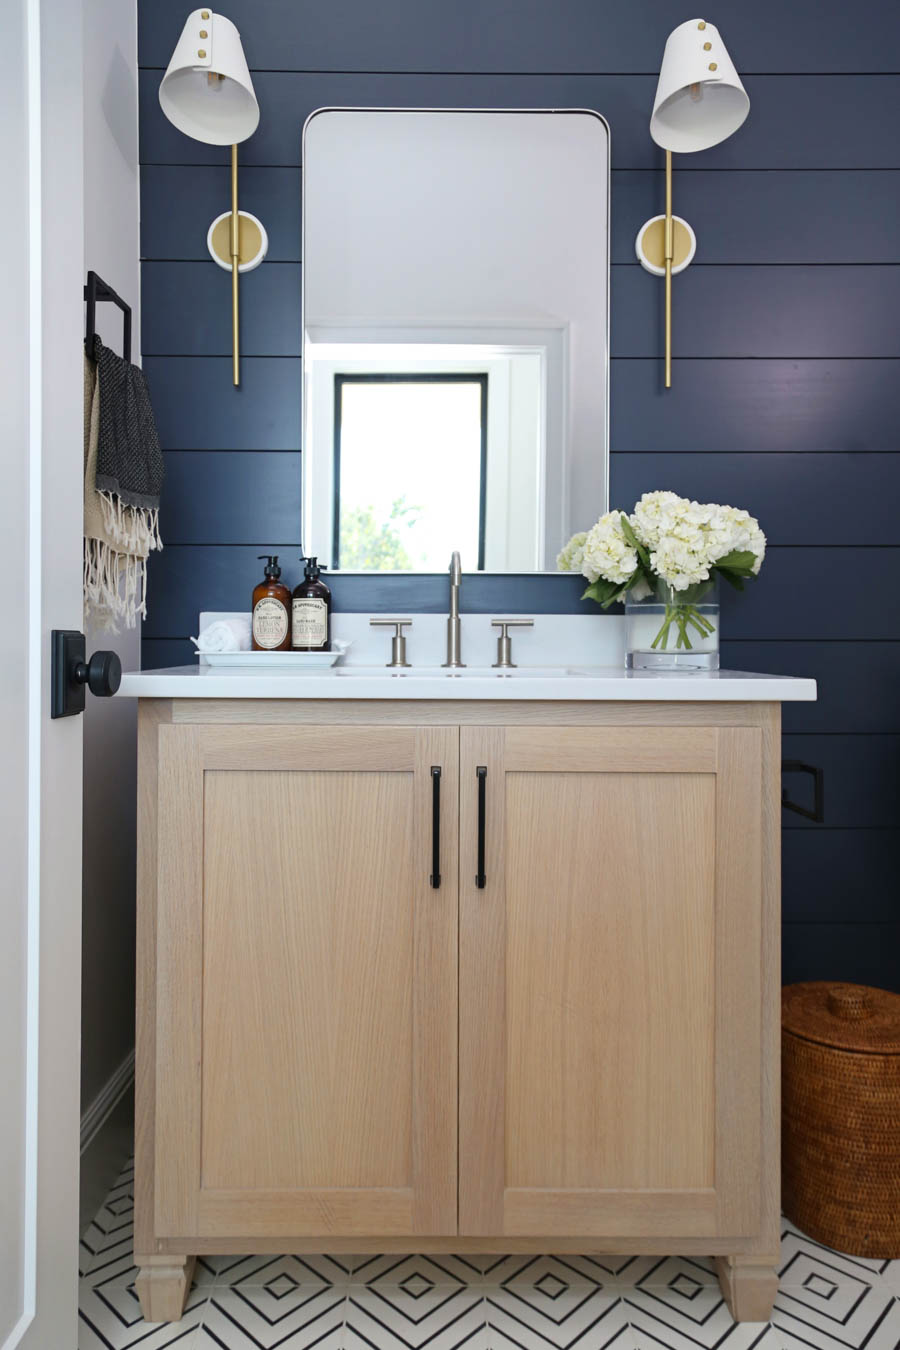 Cc And Mike Frisco I Project Reveal Navy Shiplap Wall With White Oak Vanity In A Bathroom With Silver Mirror And Brass And White Sconces Black Hardware Cc Mike